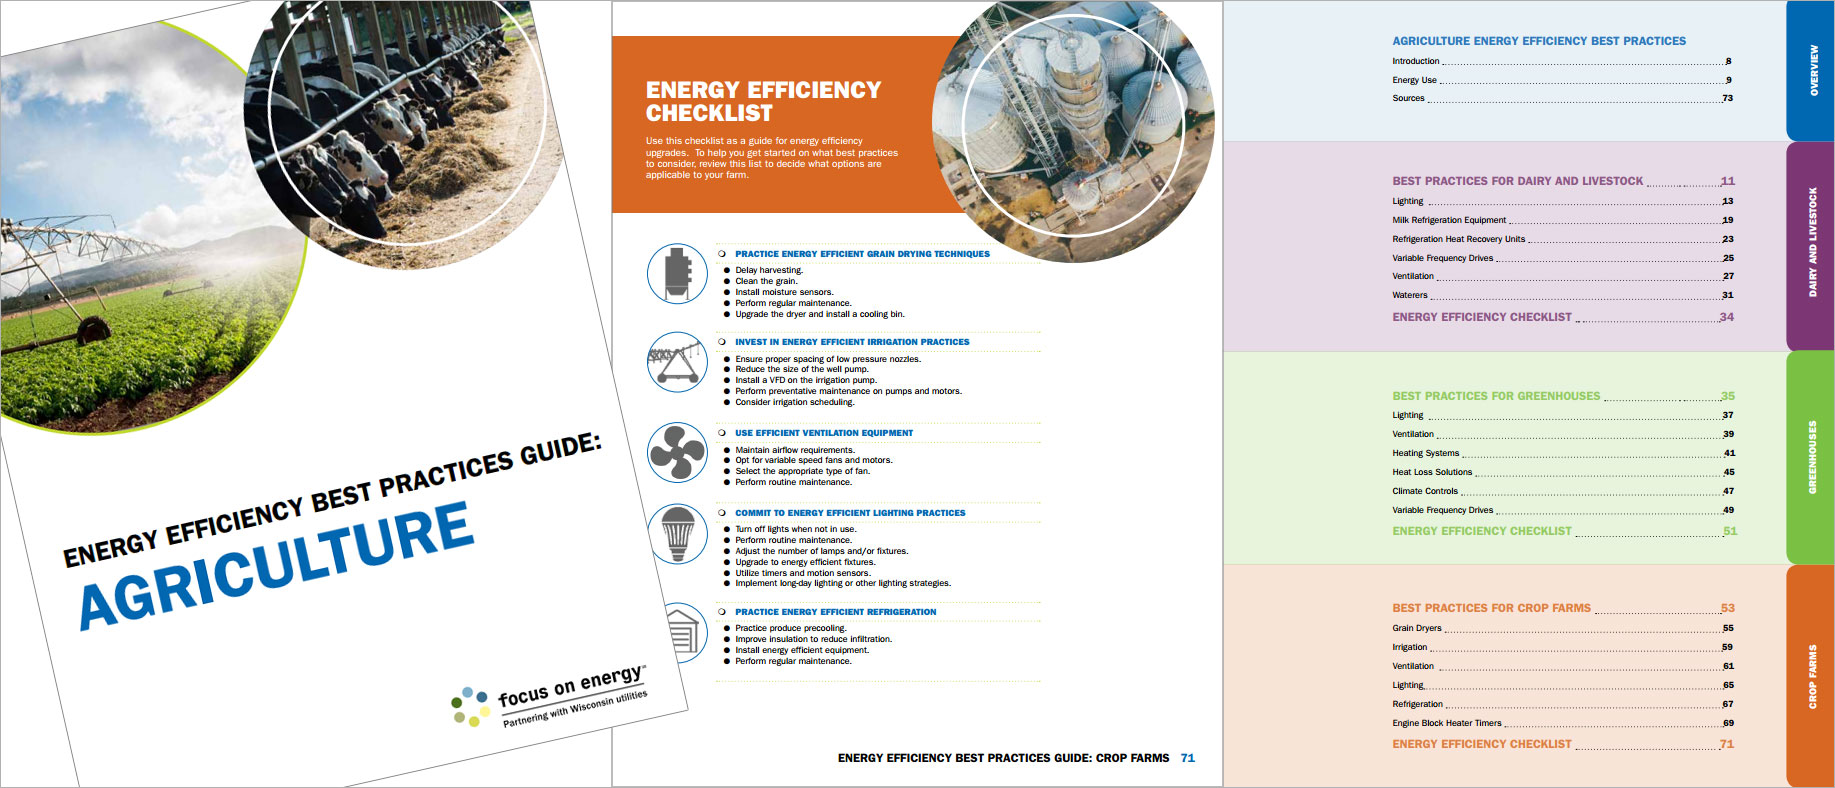 Focus on Energy Energy Agriculture Efficiency Best Practices Guidebook Cover Contents and Checklist